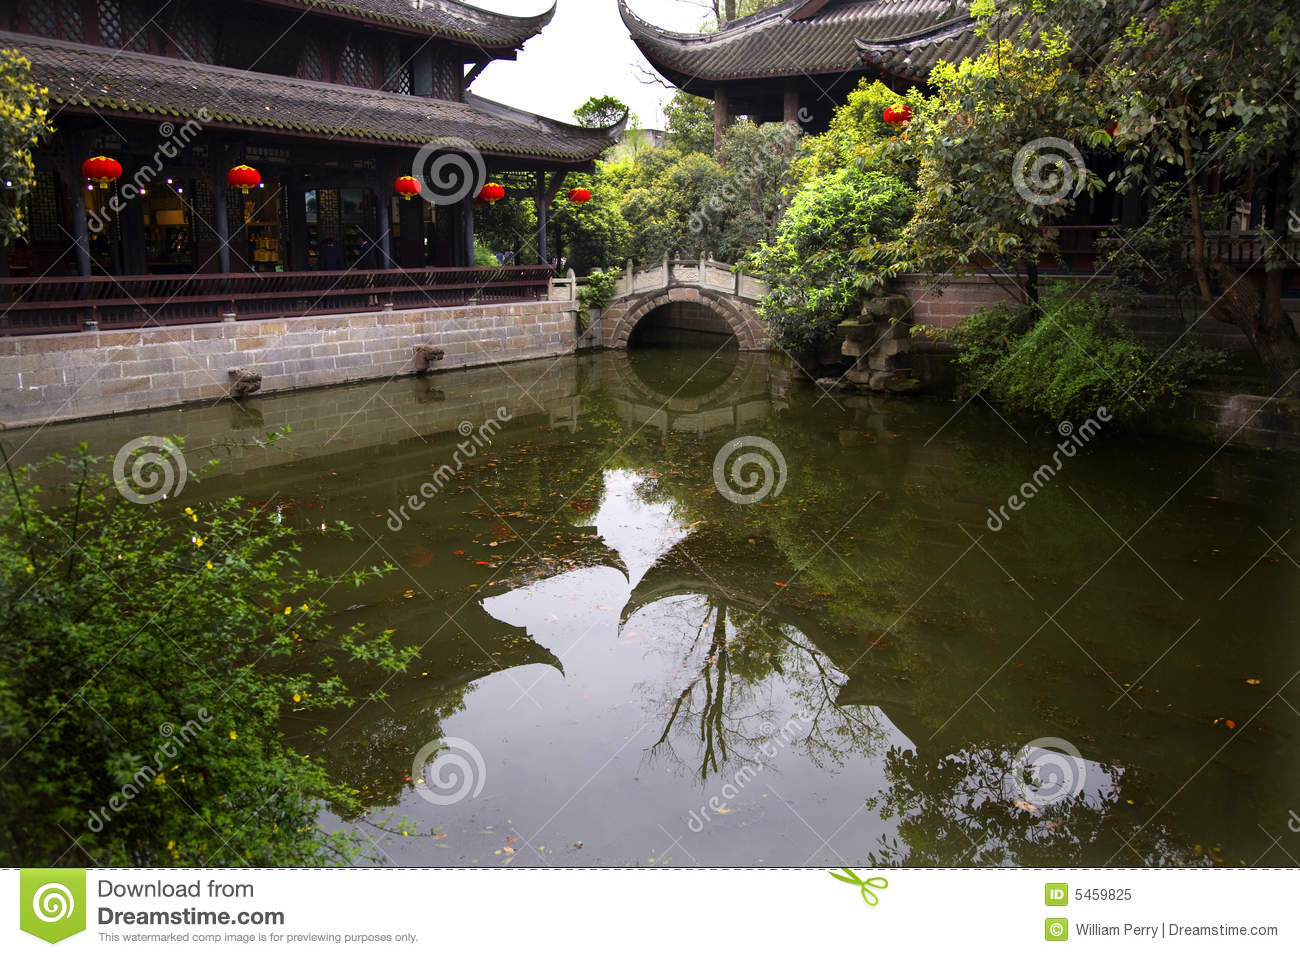 Roter Laterne-Teich-Reflexions-Tempel Sichuan China